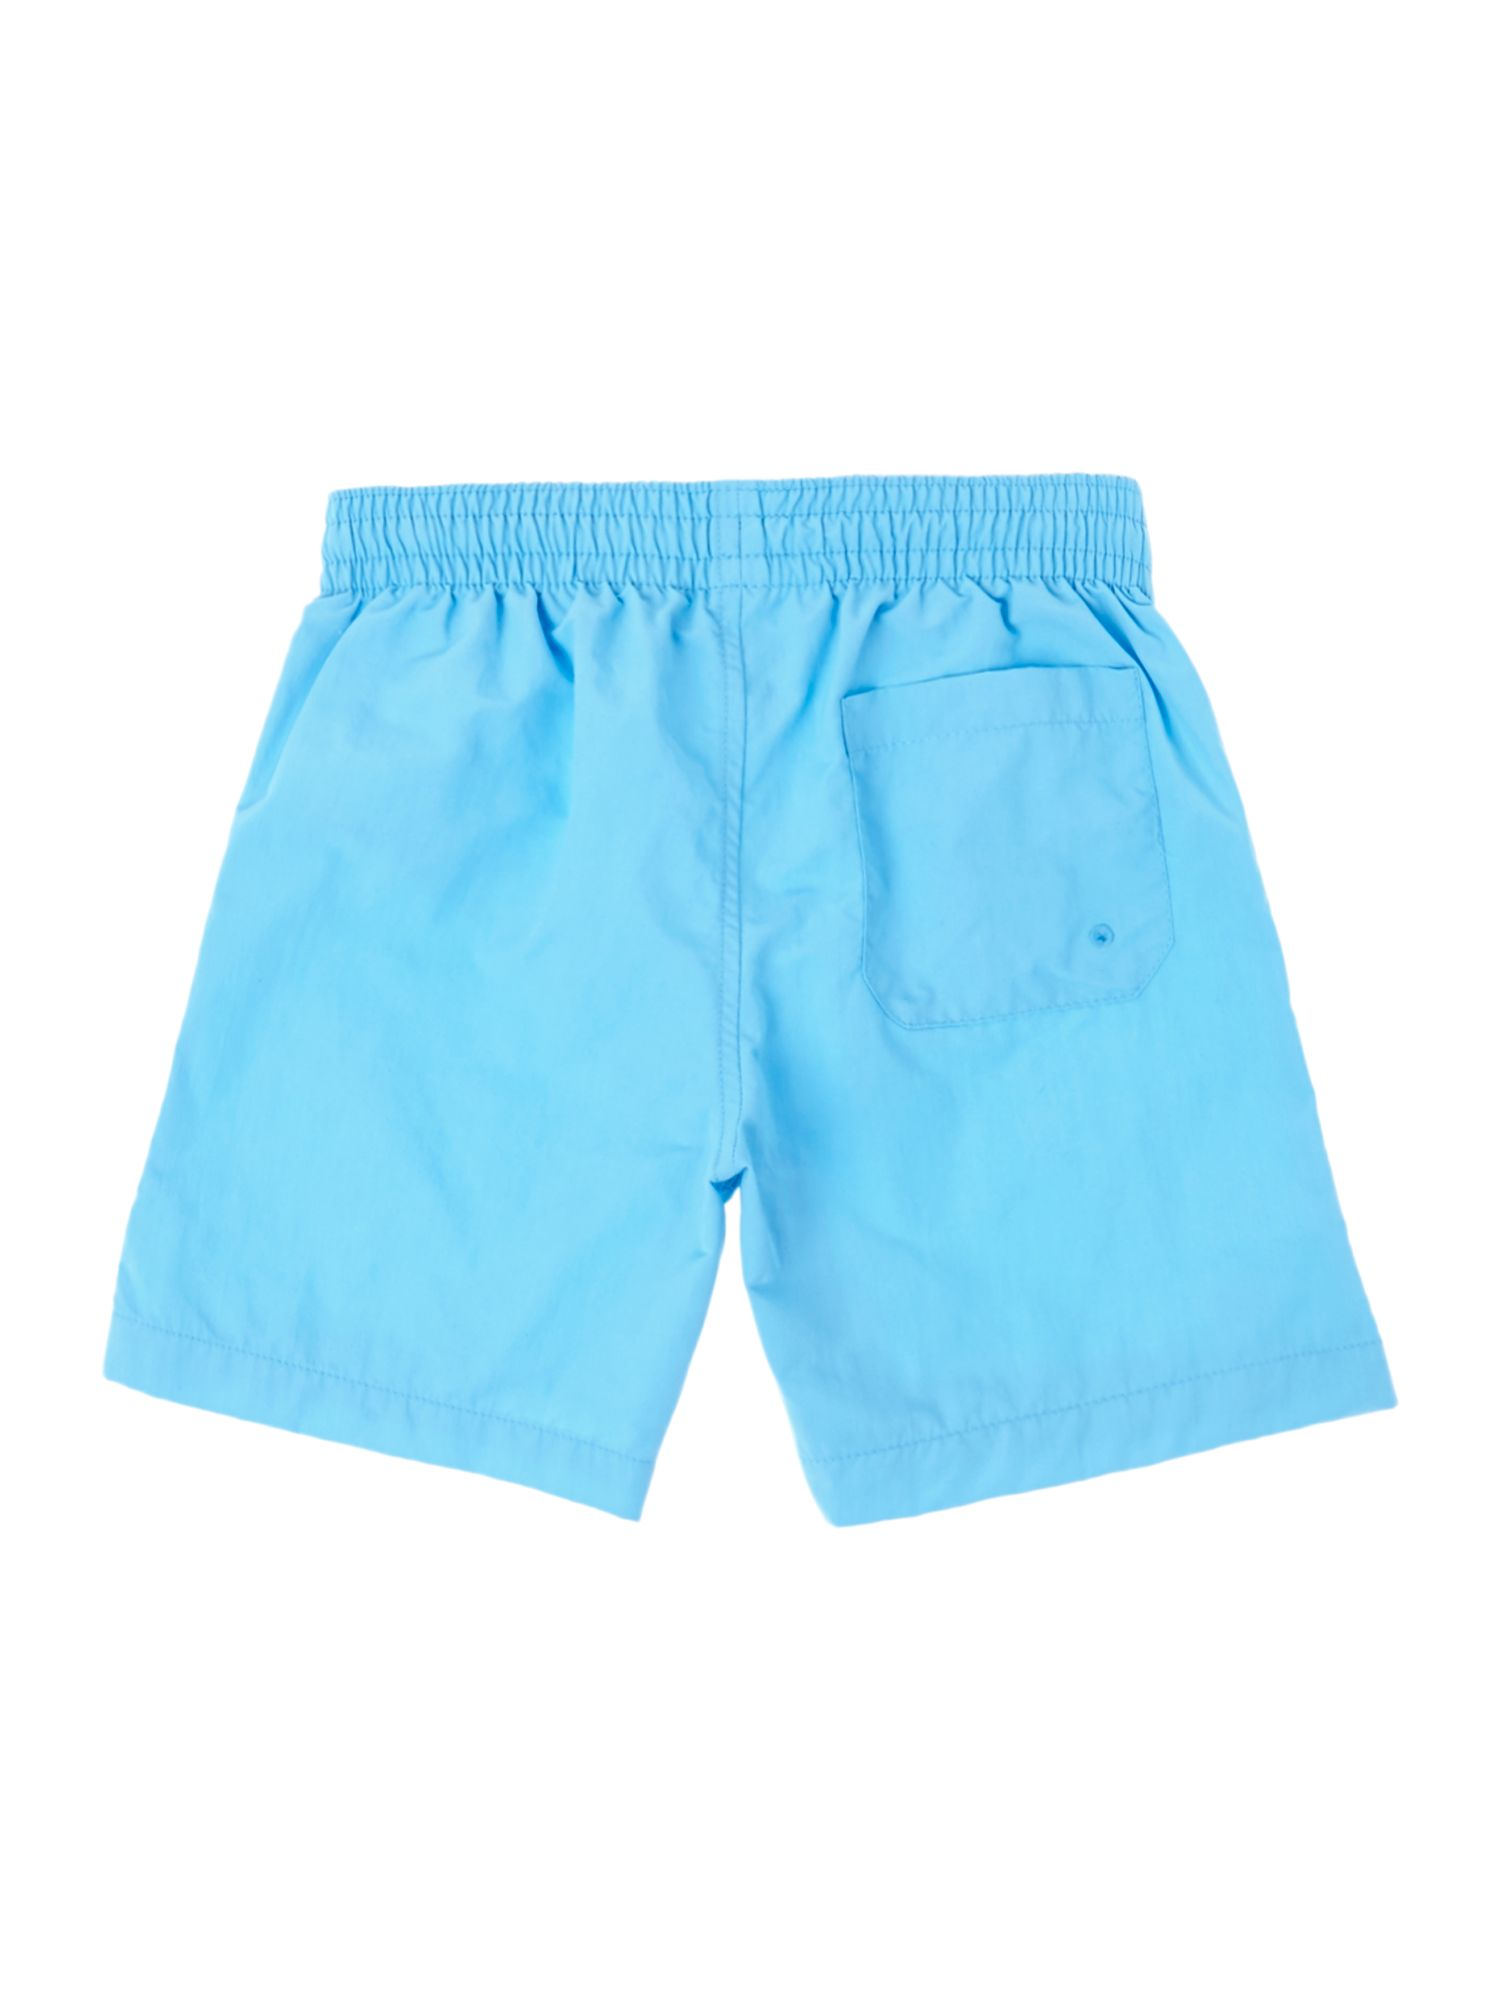 Boys hidden logo swim shorts